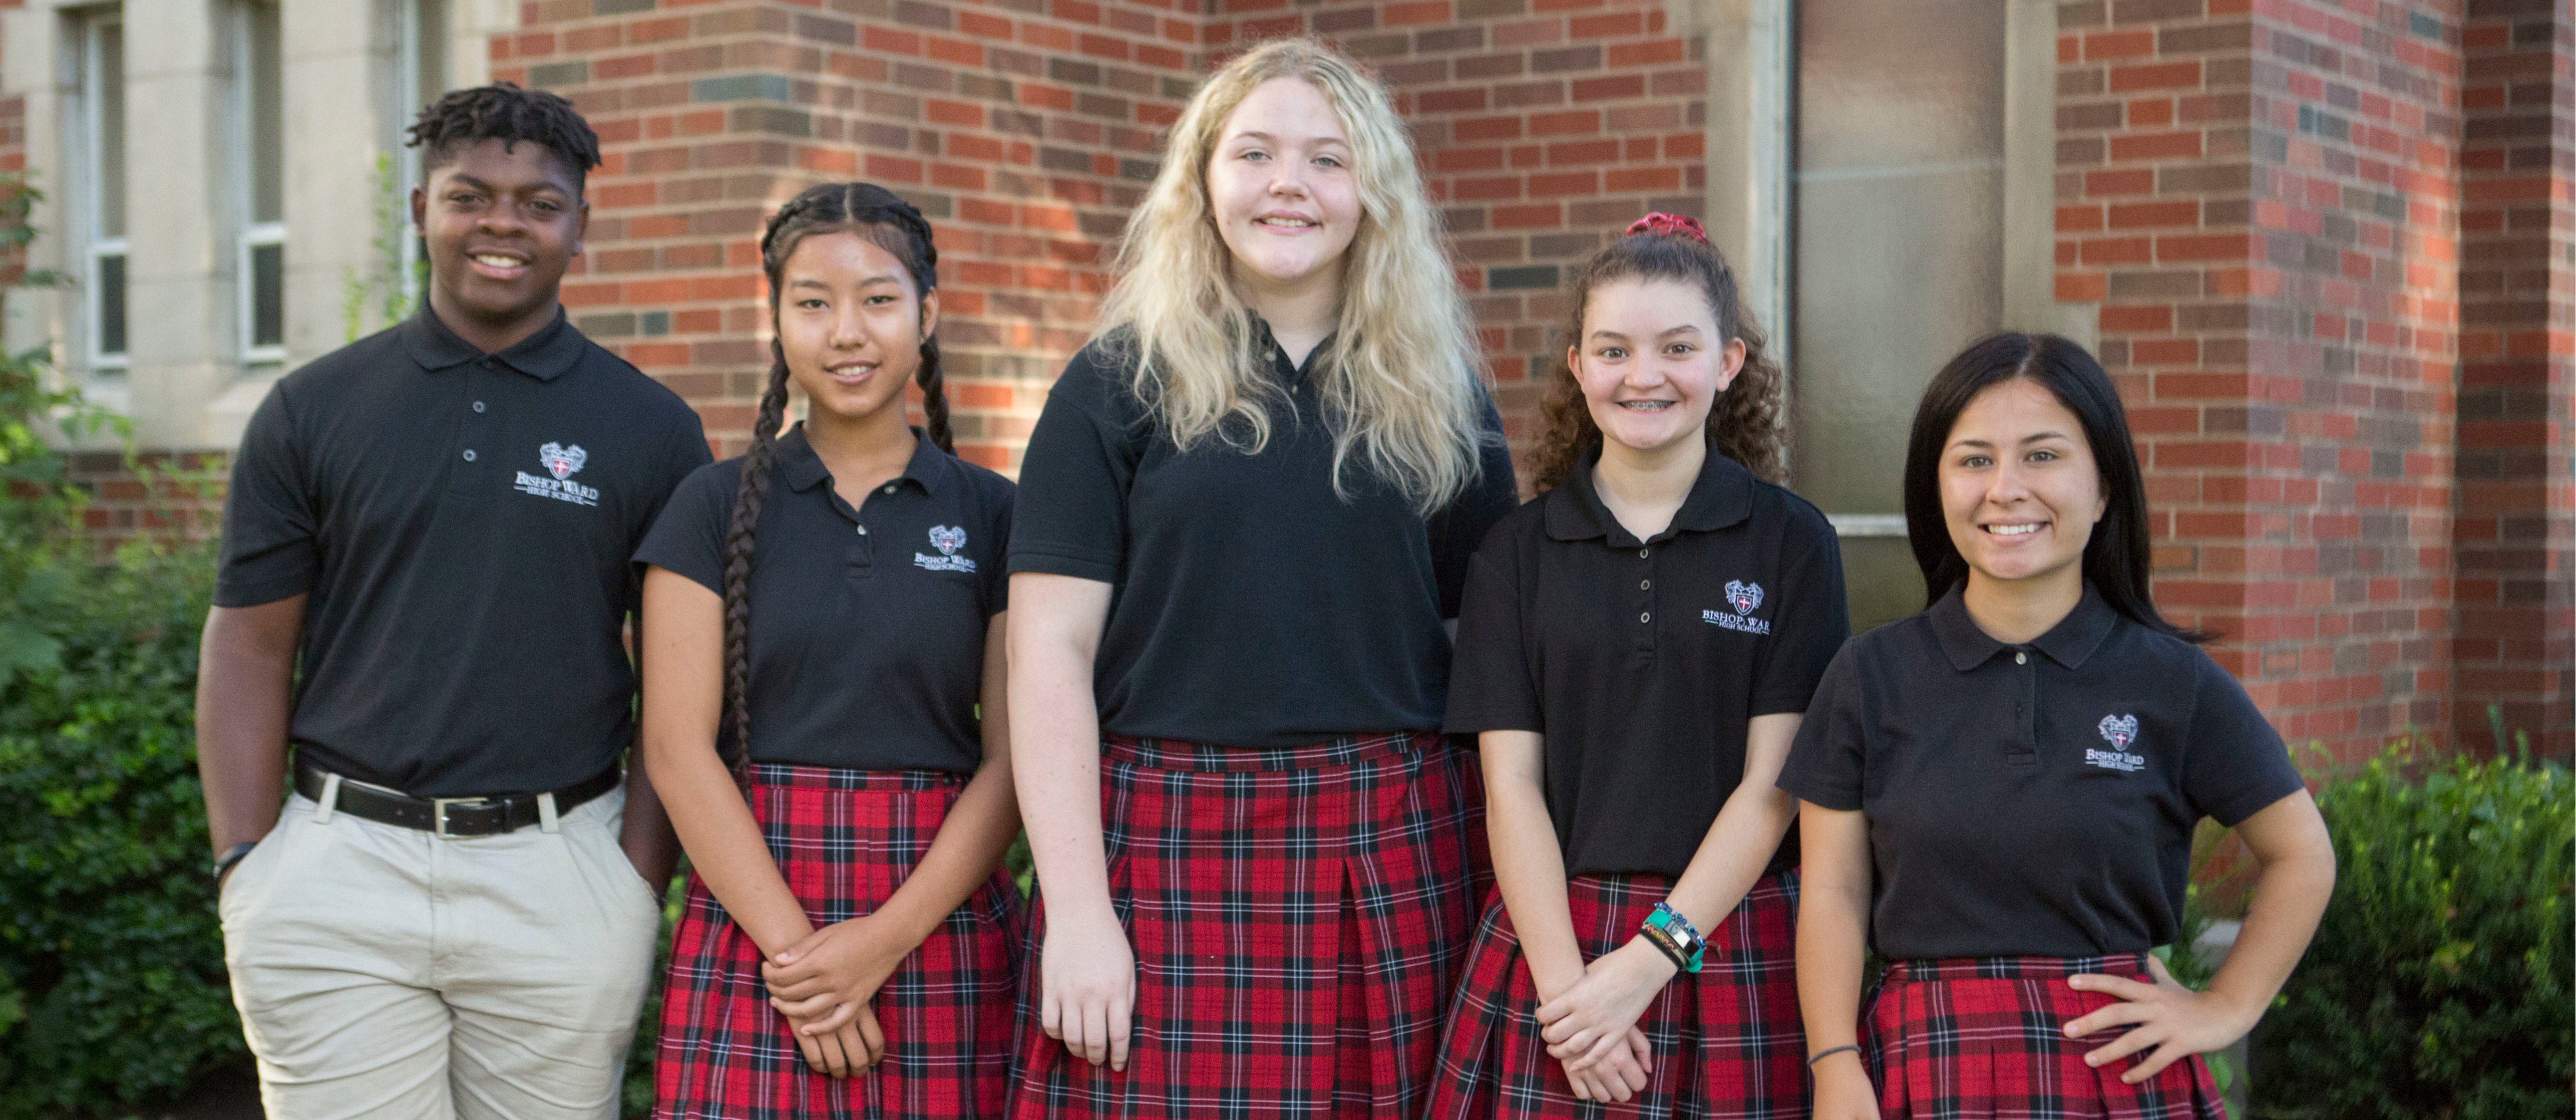 Bishop Ward Catholic High School educates each individual body, mind and soul in Christ, enabling students from a diverse family community to be servant-leaders in right relation with God, self and others.